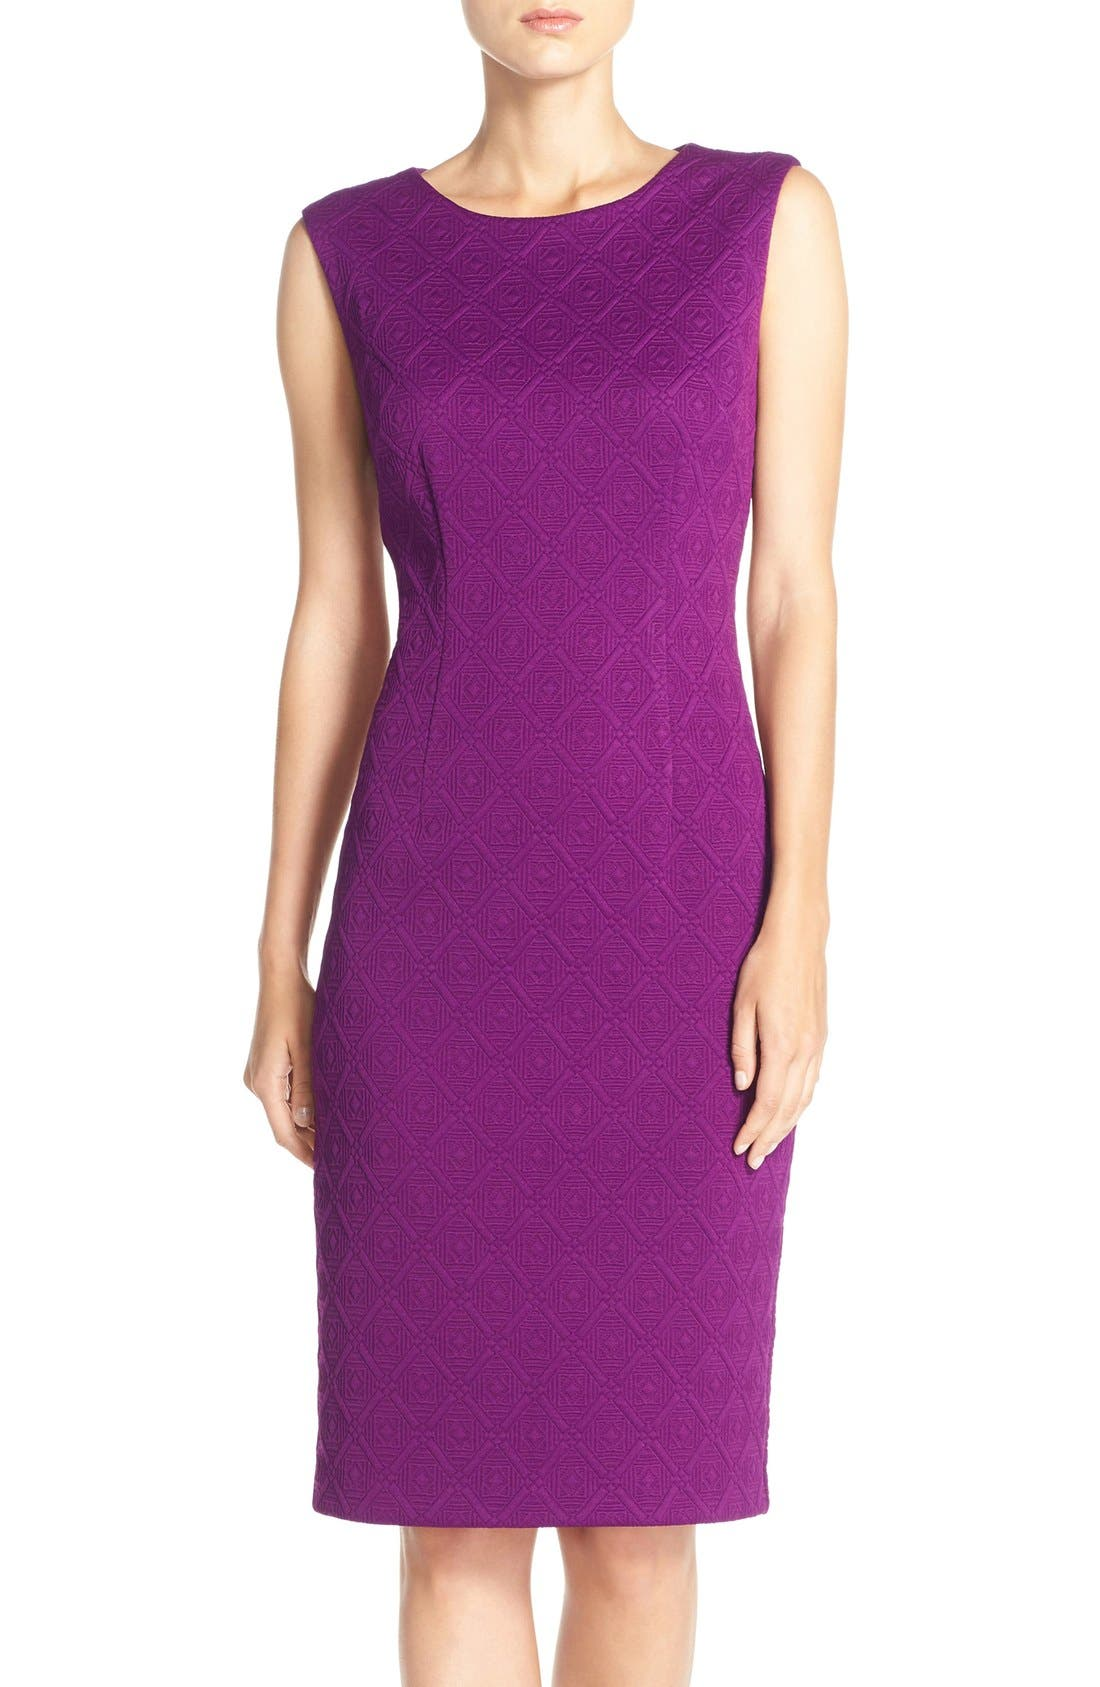 Alternate Image 1 Selected - Betsey Johnson Textured Knit Sheath Dress